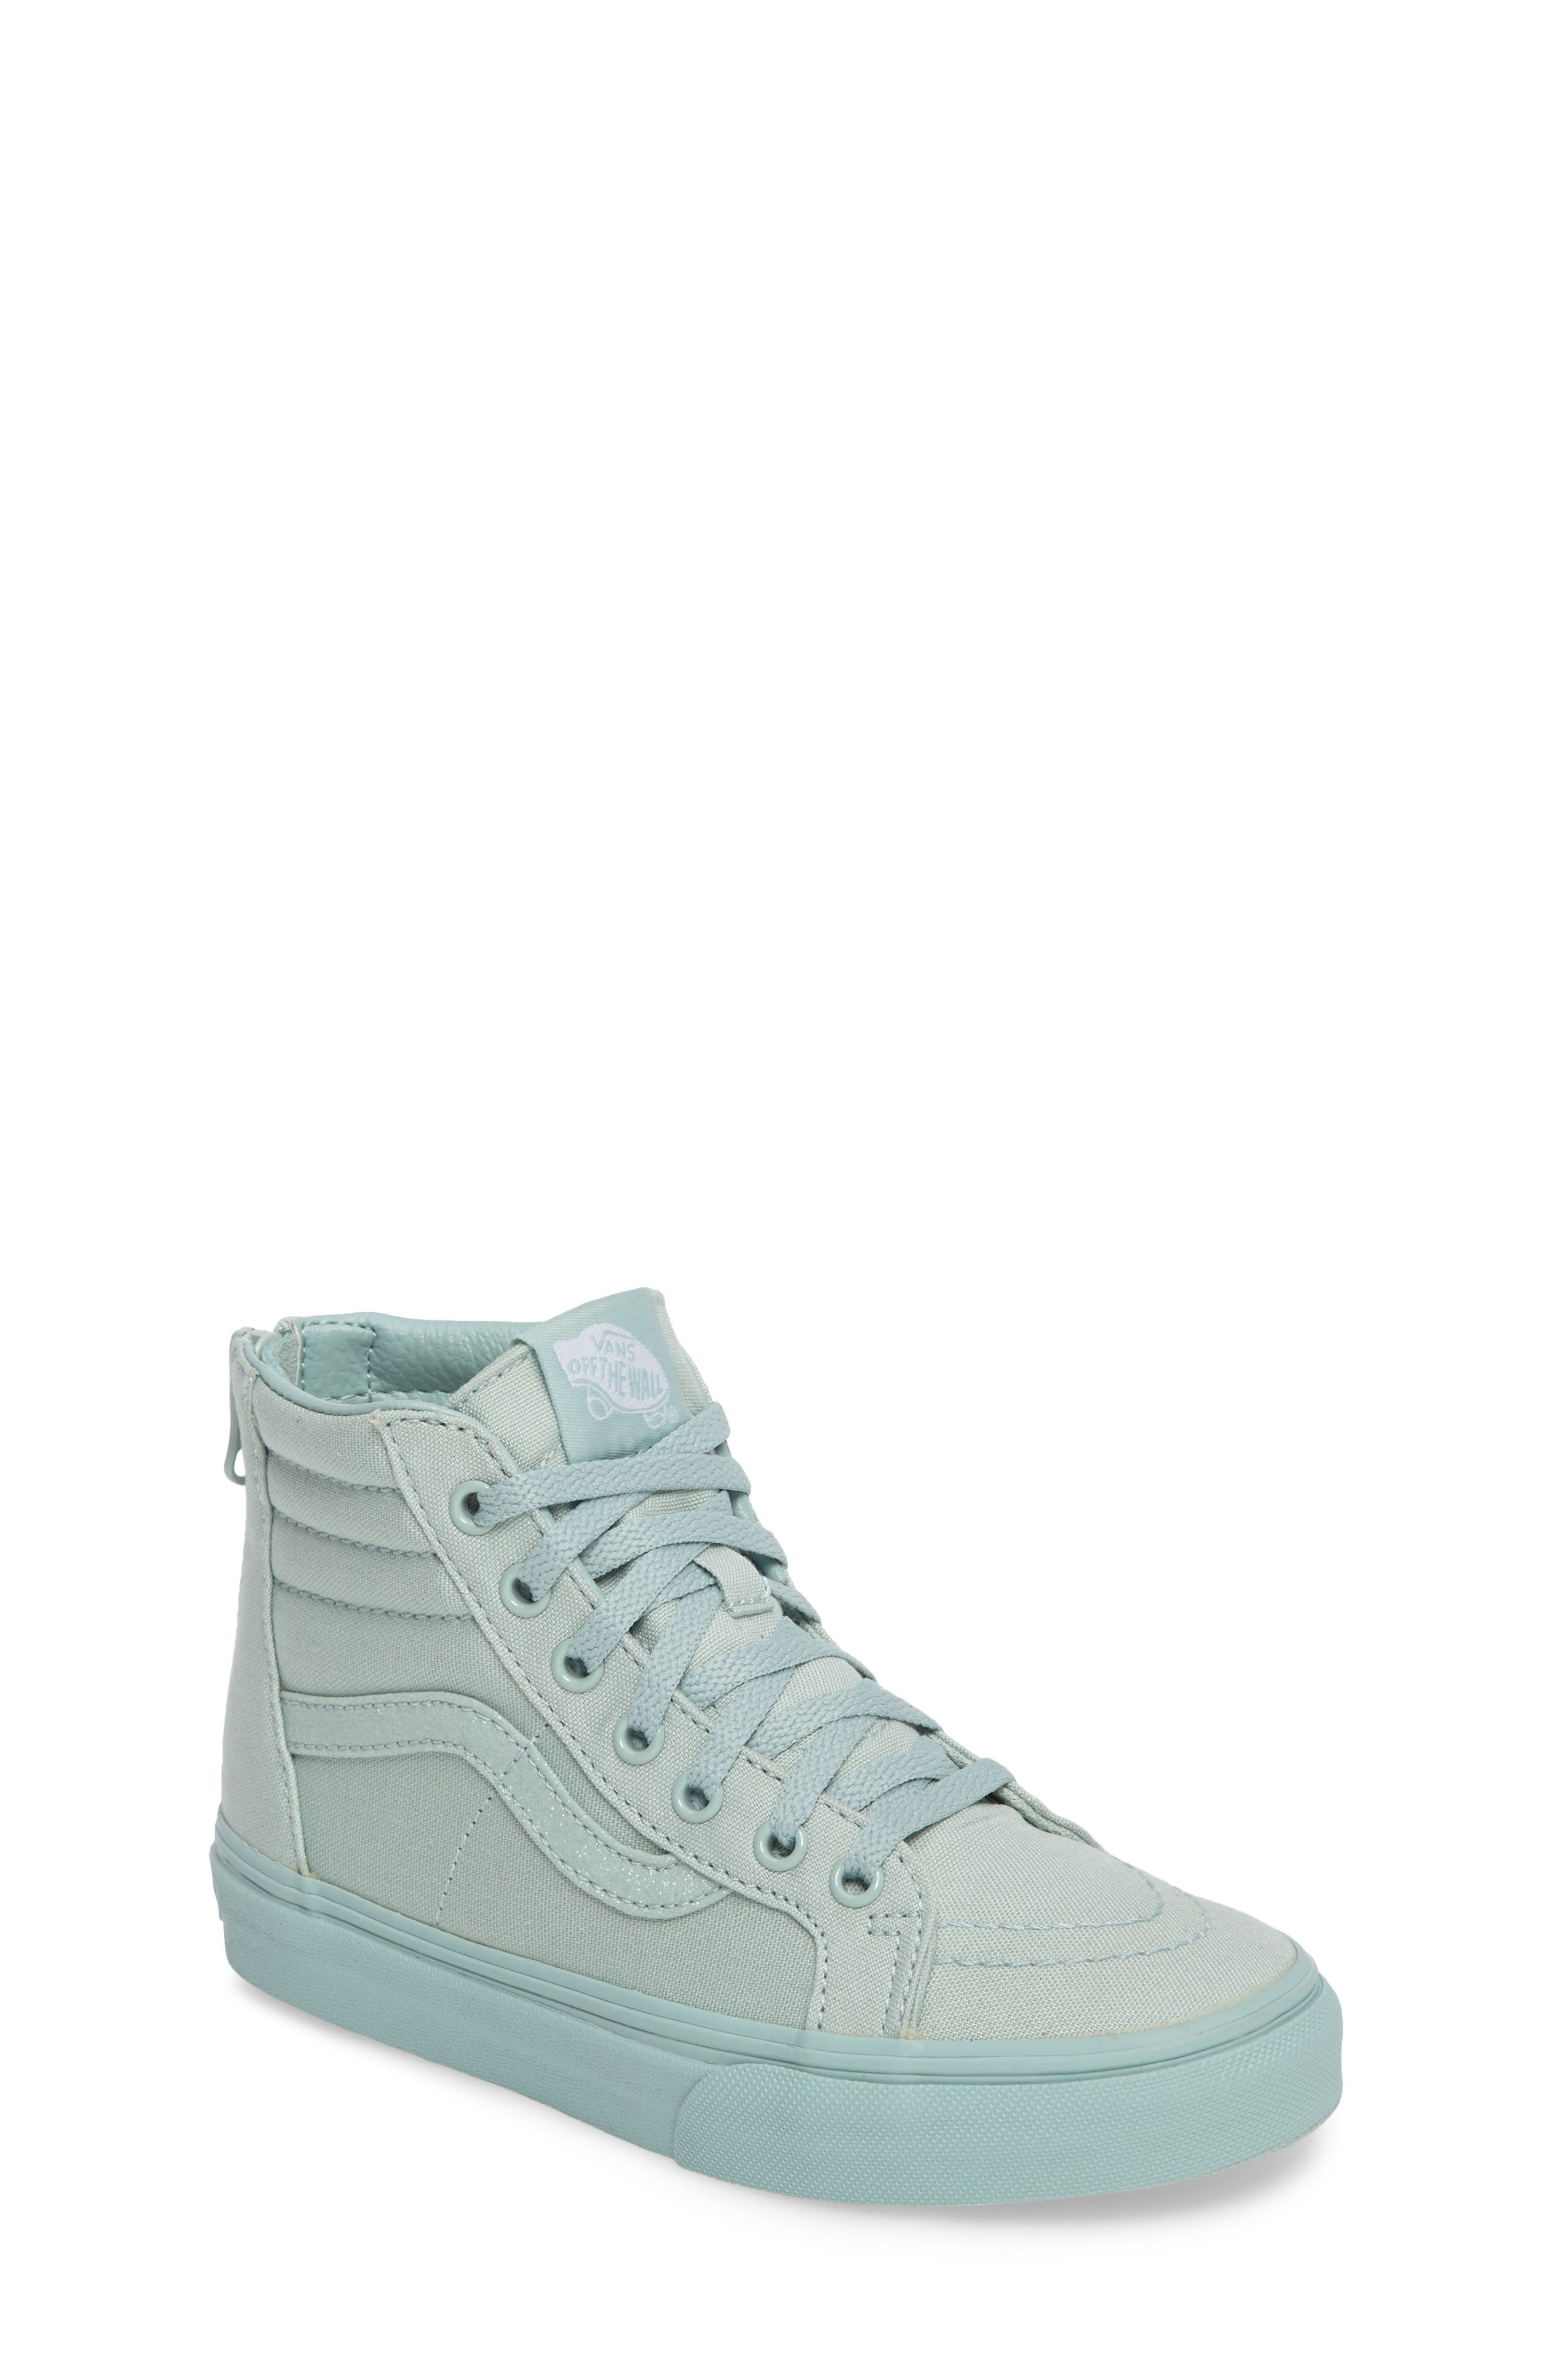 Alternate Image 1 Selected - Vans SK8-Hi Zip Sneaker (Baby, Walker, Toddler, Little Kid & Big Kid)